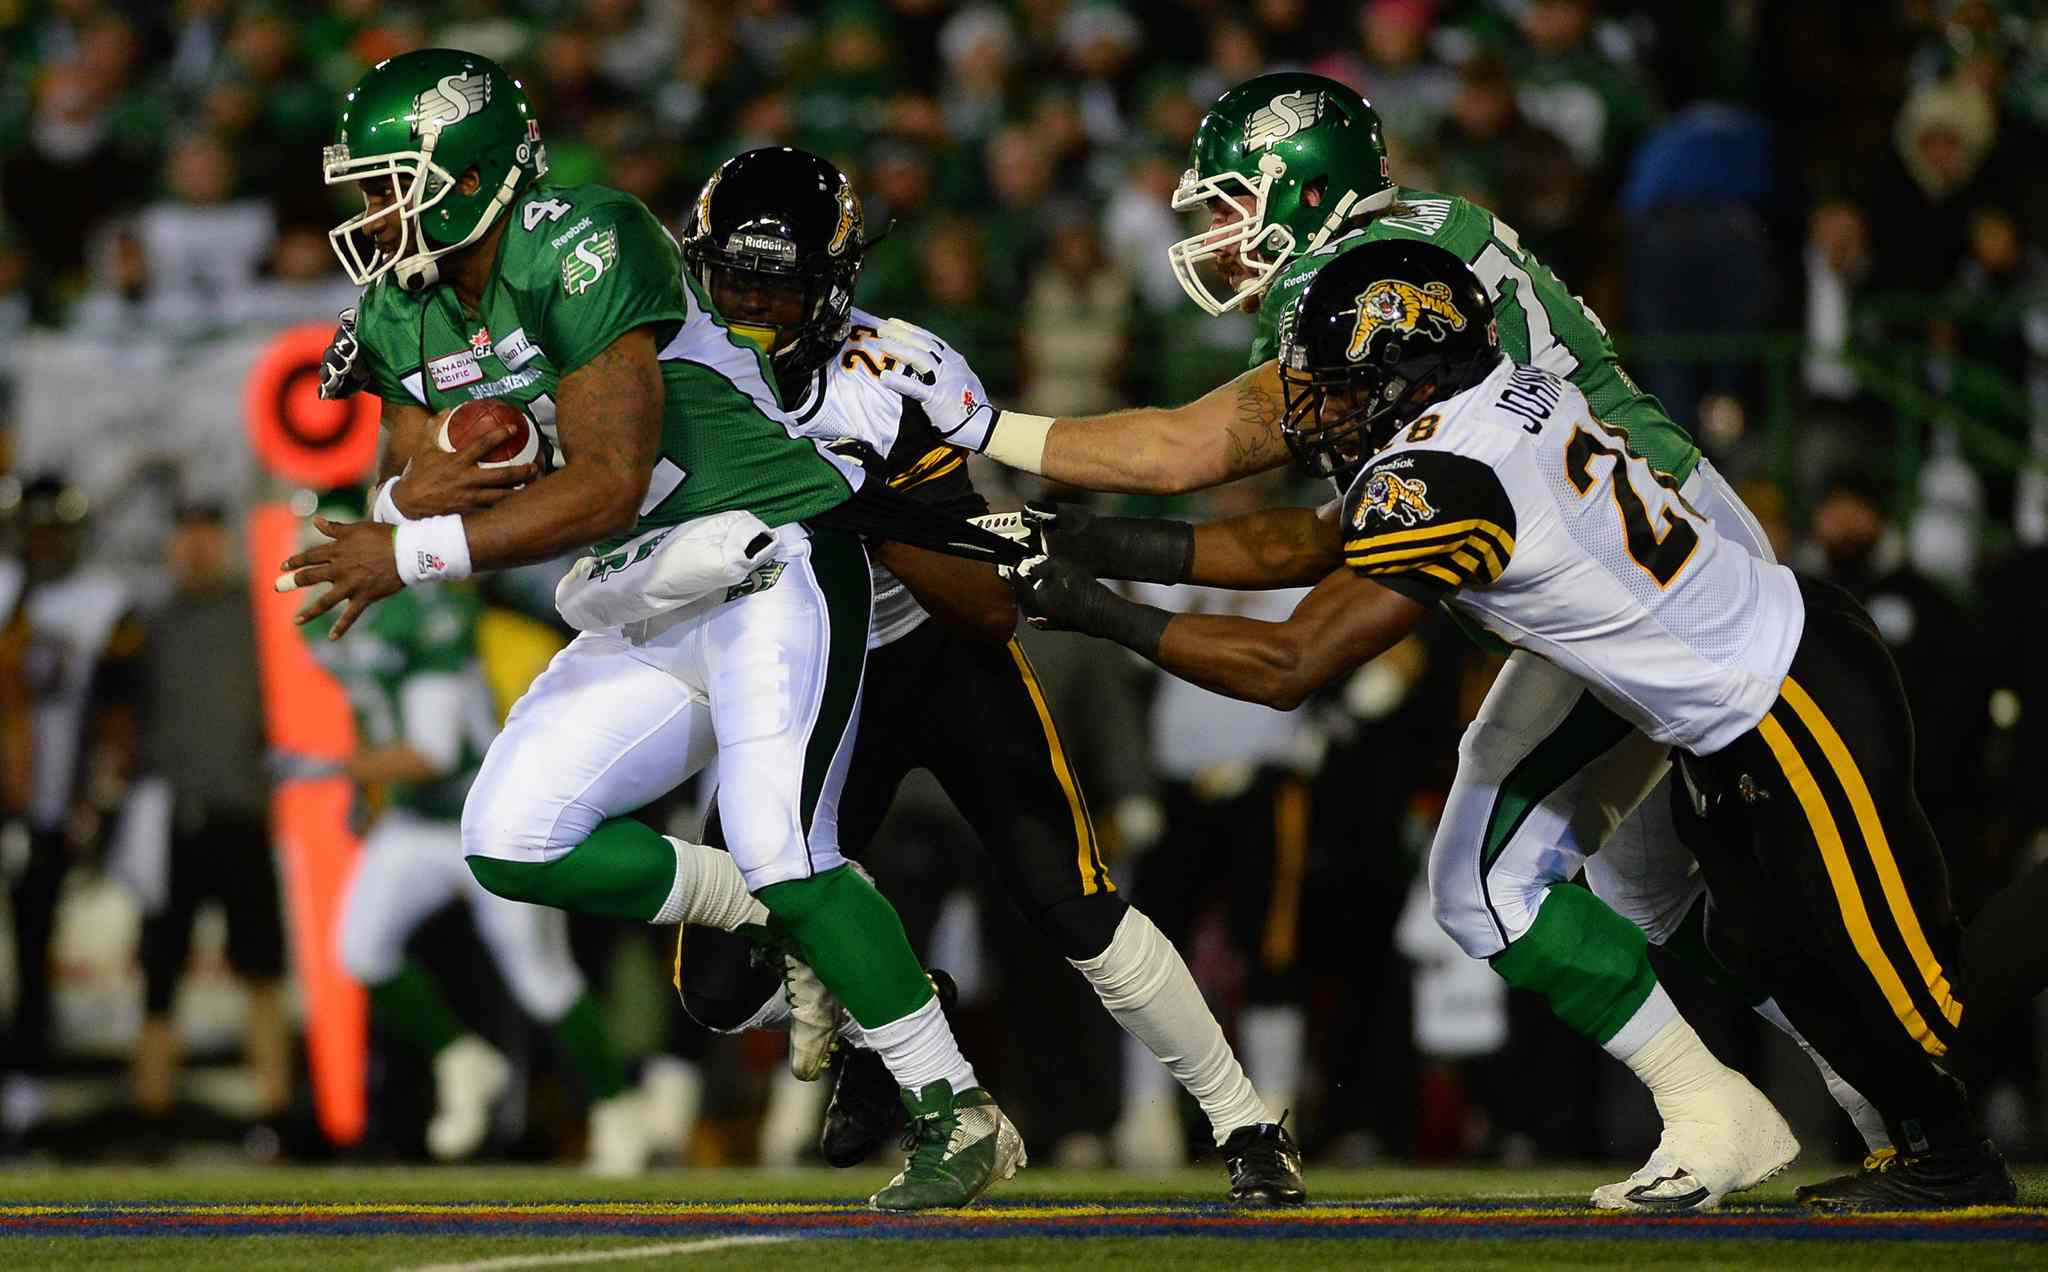 Saskatchewan Roughriders quarterback Darian Durant is grabbed by the jersey by Hamilton Tiger-Cats linebacker Jamall Johnson during the first quarter.